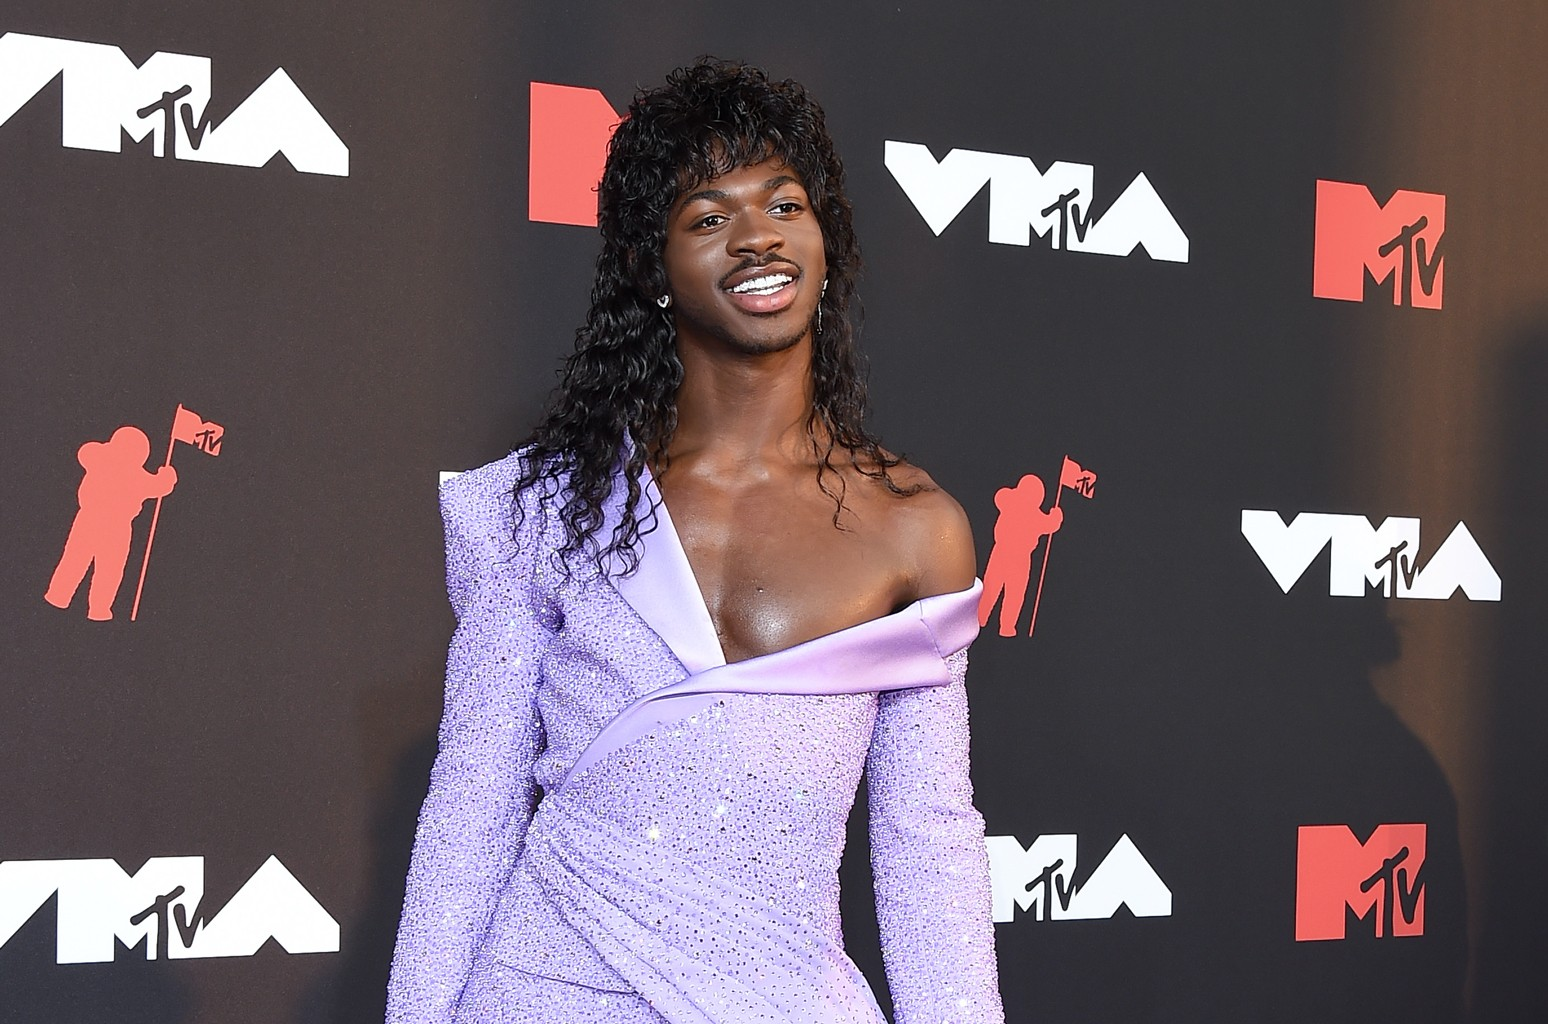 Lil Nas X Teases 'The Montero Show' with New Trailer